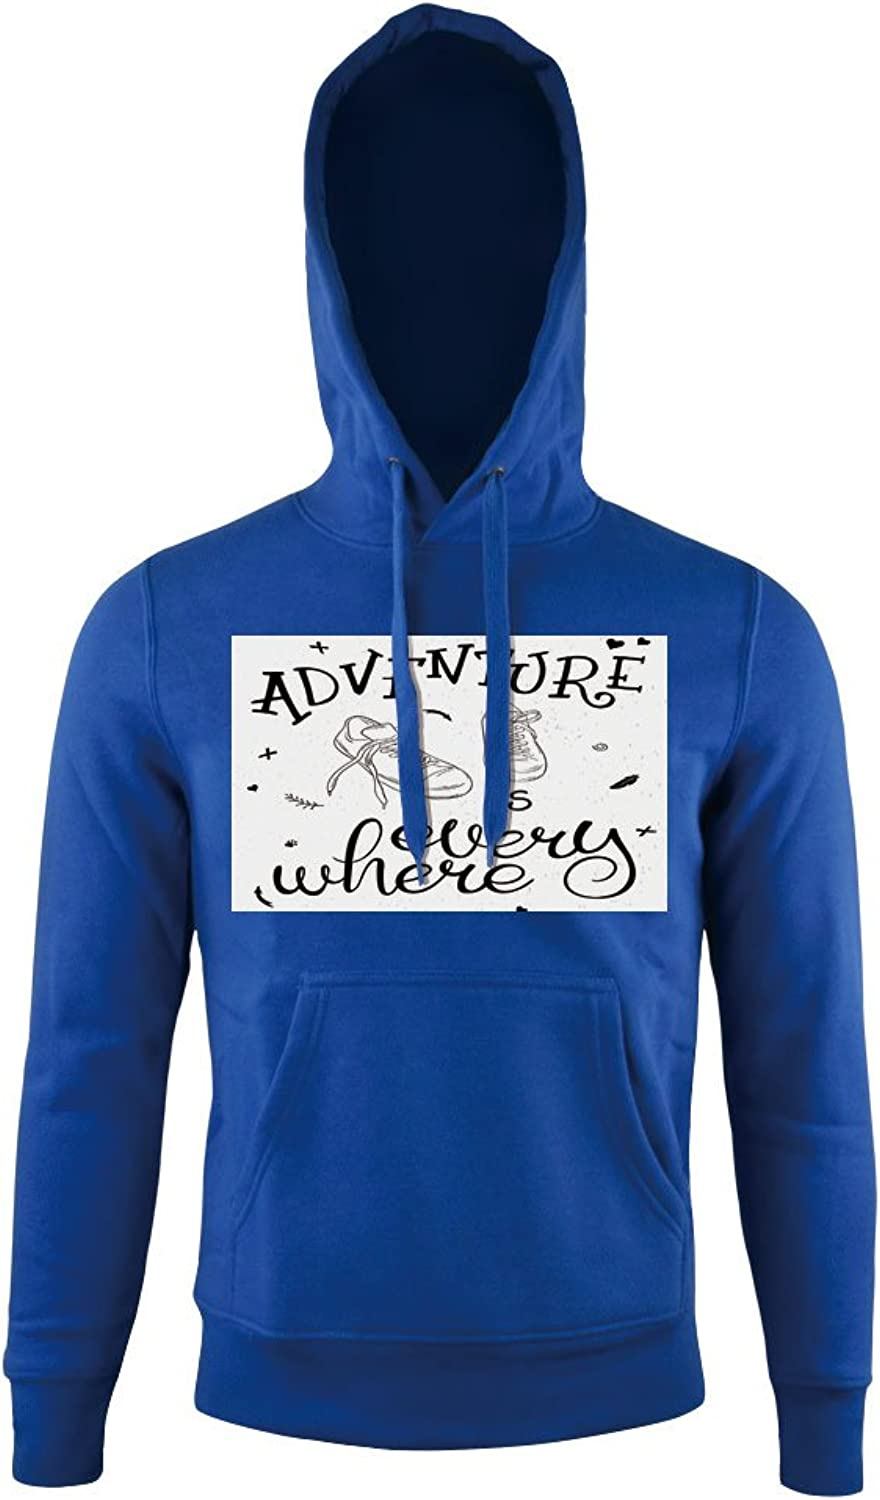 Print Hoodie, Youth Theme with Pair of Sneakers Walking Hiking,for mens